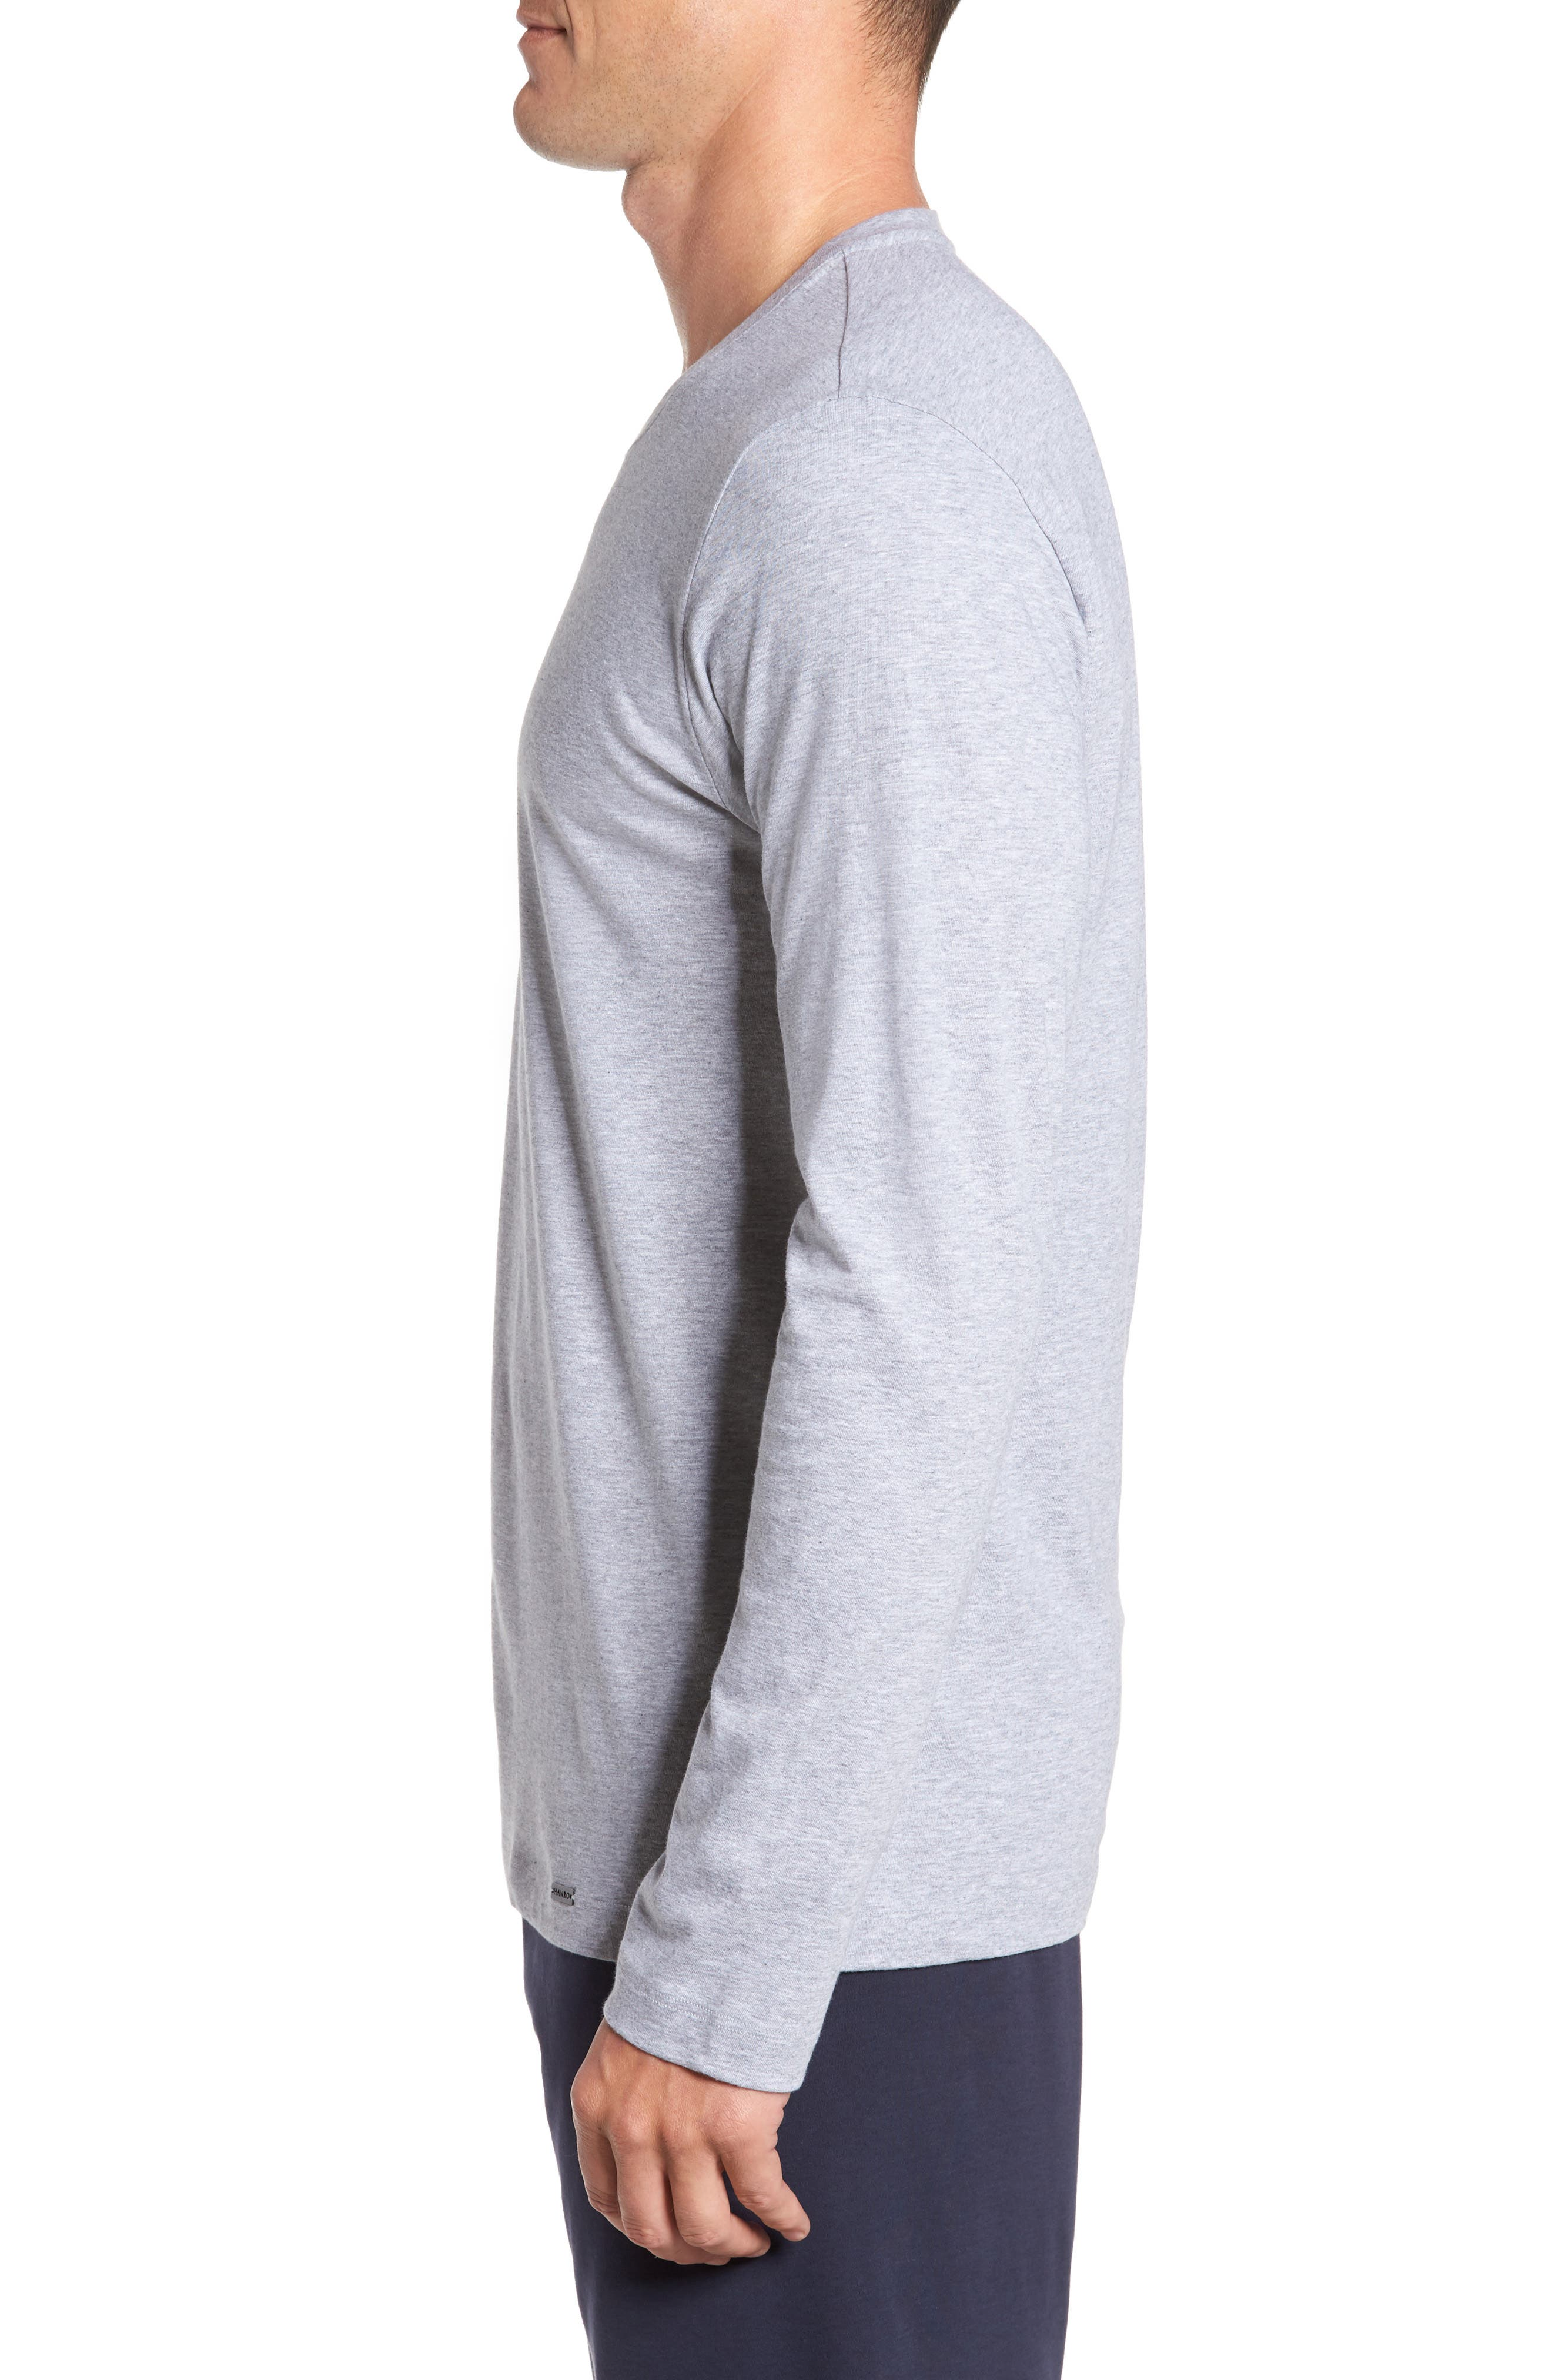 Living Long Sleeve T-Shirt,                             Alternate thumbnail 3, color,                             Grey Melange